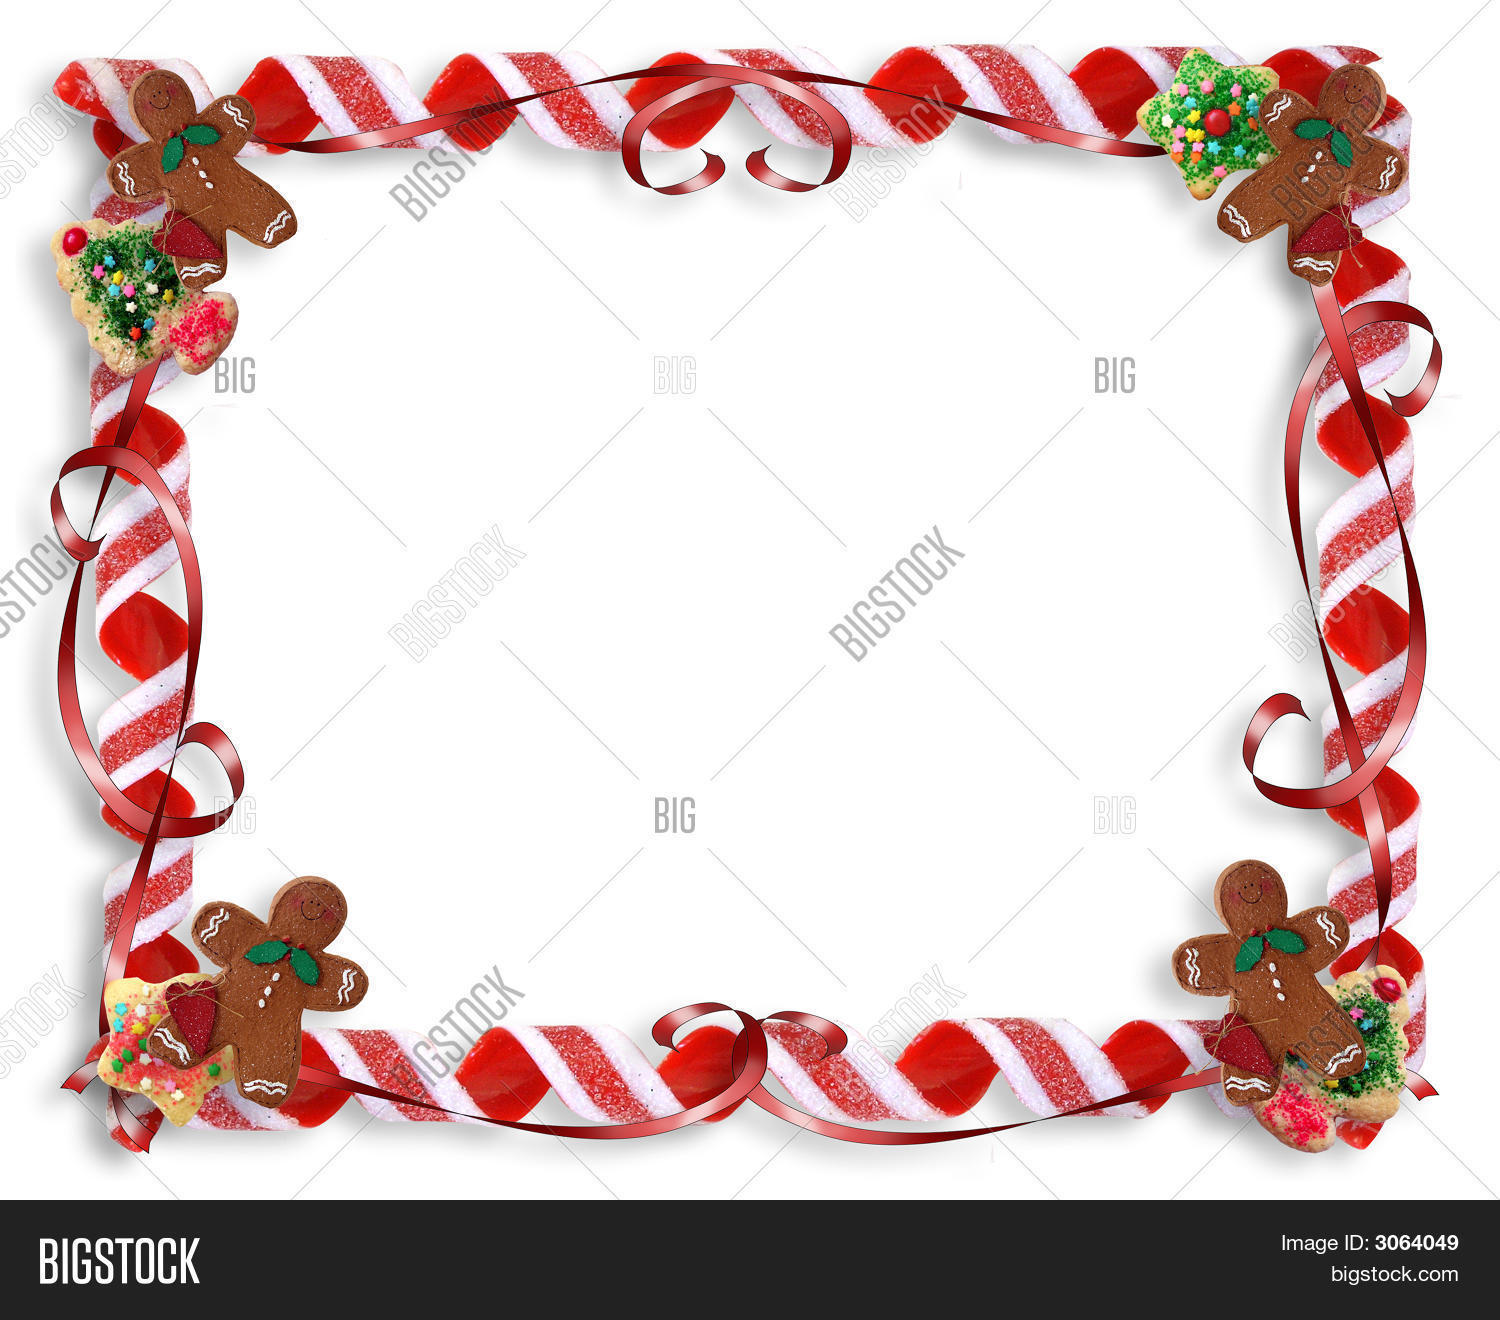 Christmas Treats Frame Background Image & Photo | Bigstock